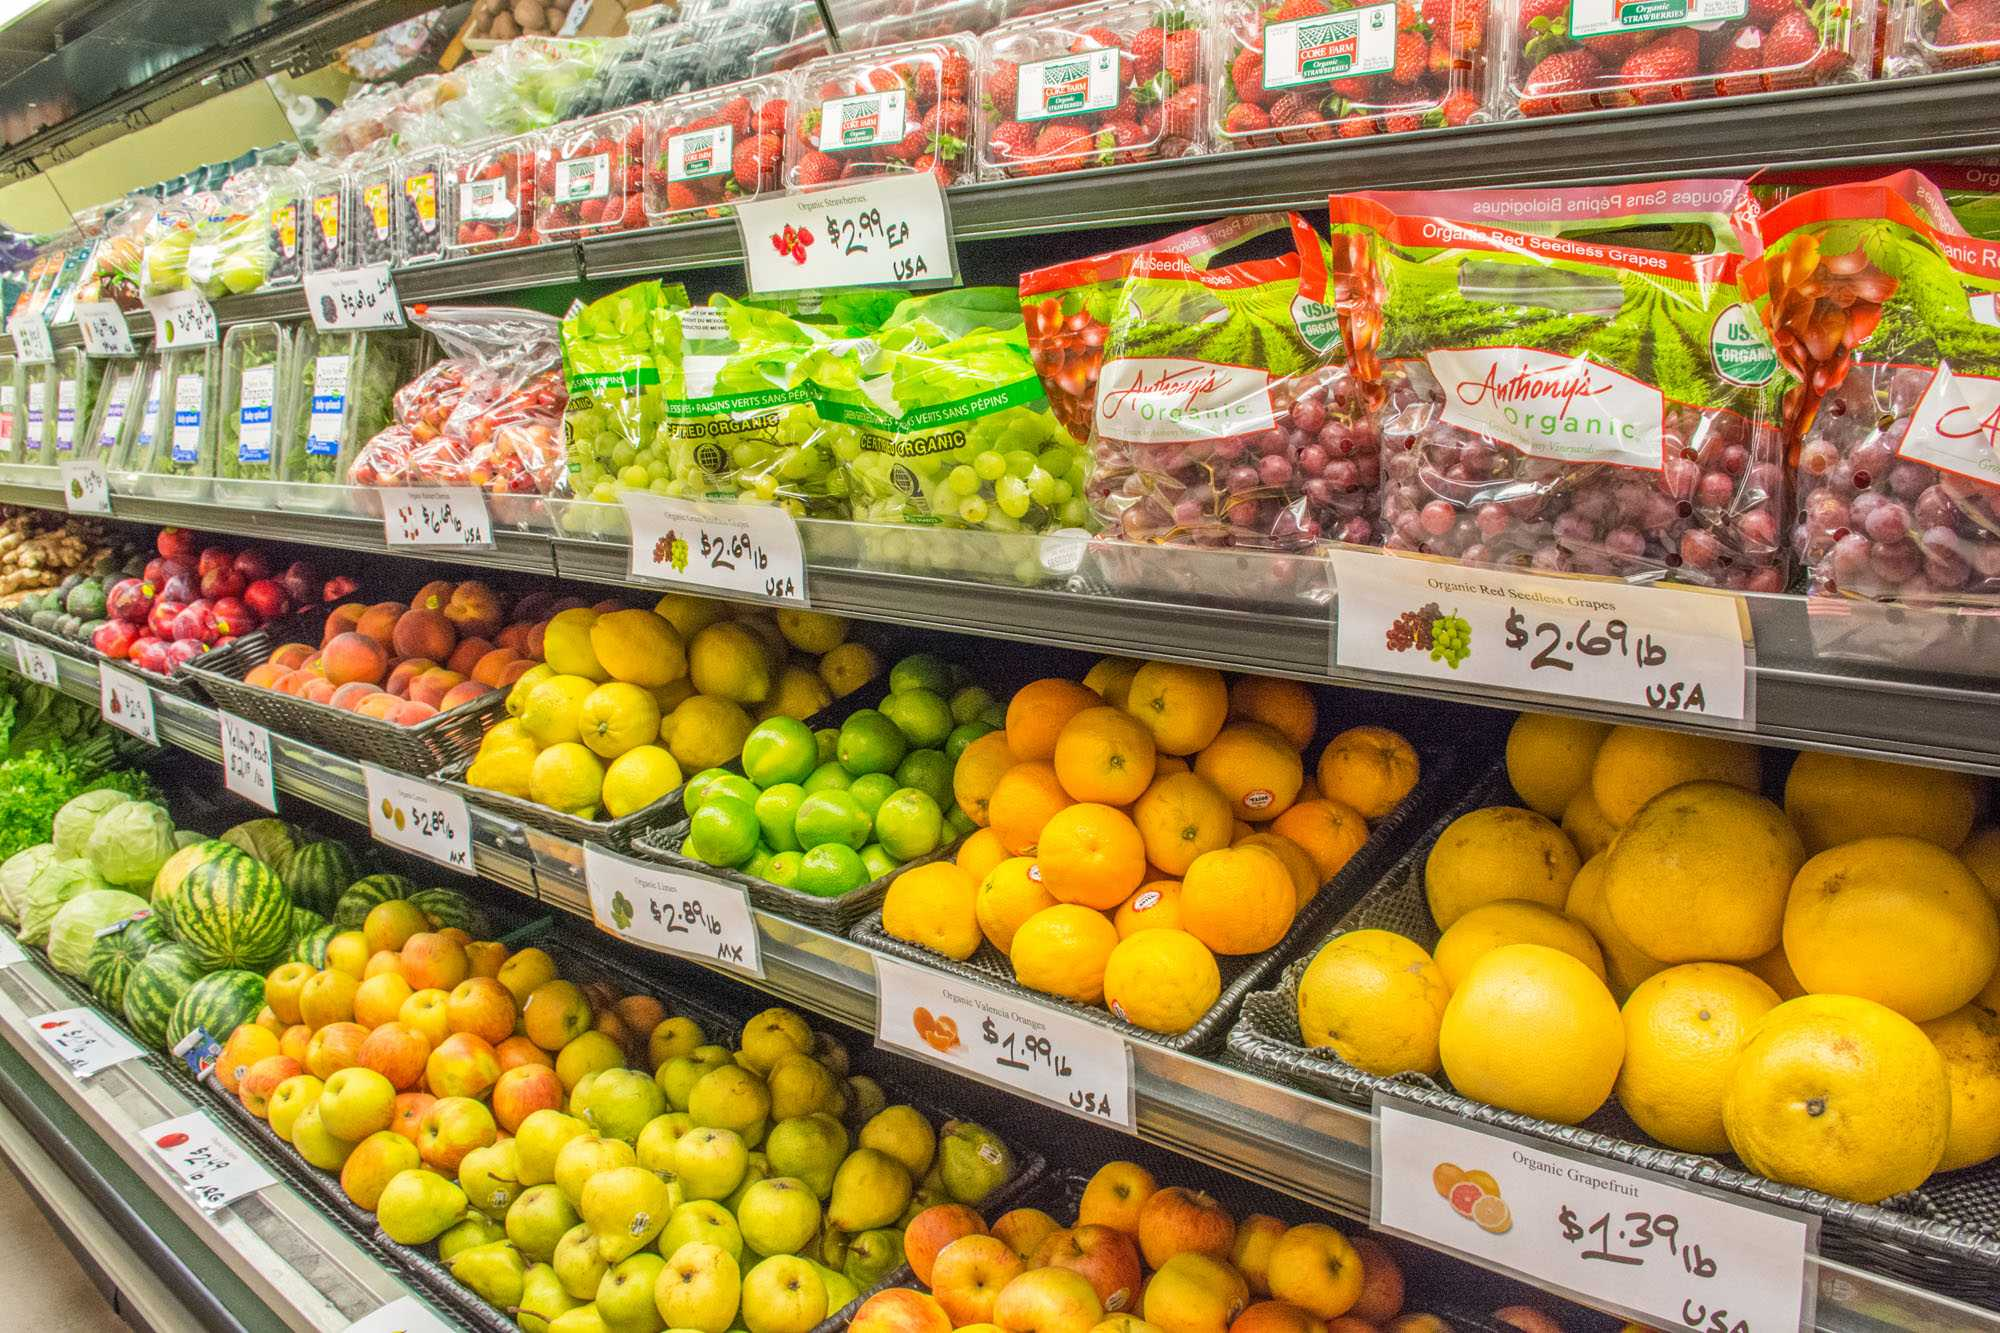 %3Cp%3EStrawberry+Fields%2C+a+grocery+store+known+for+selling+natural%2C+organic+and+local+products+in+Urbana%2C+reopened+Thursday+under+new+management.%3C%2Fp%3E